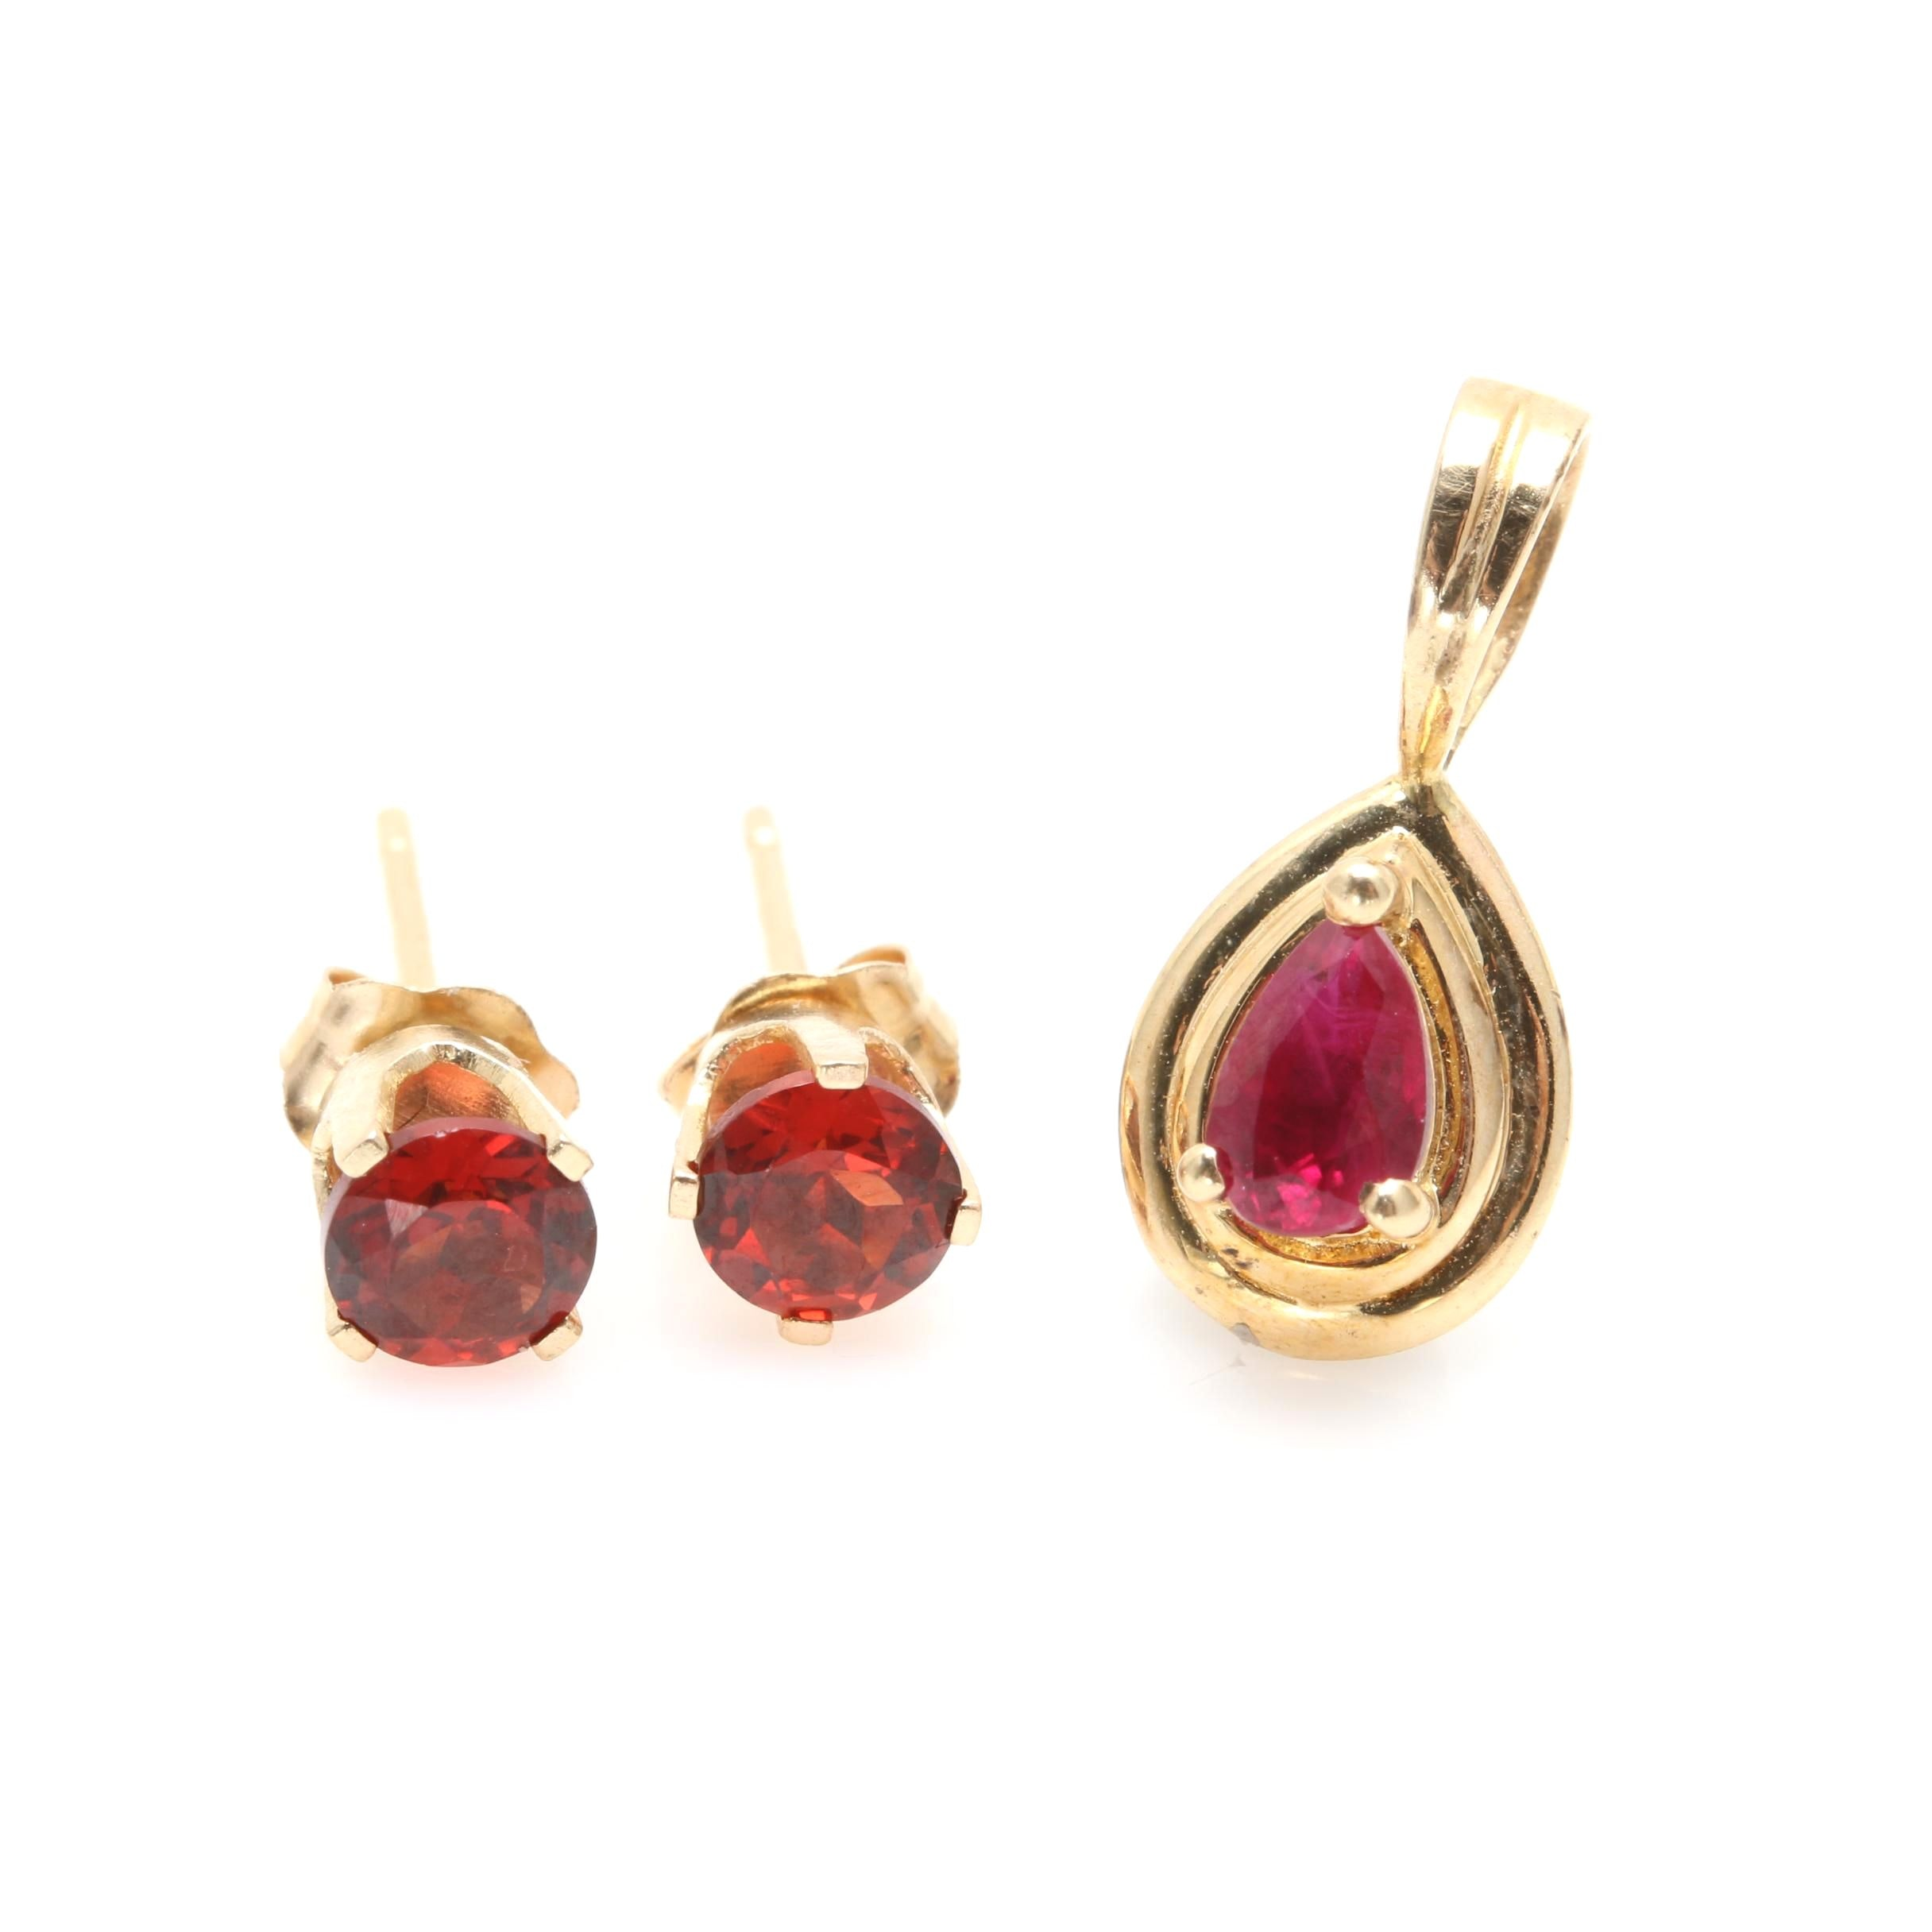 14K Yellow Gold Garnet Earrings and Ruby Pendant